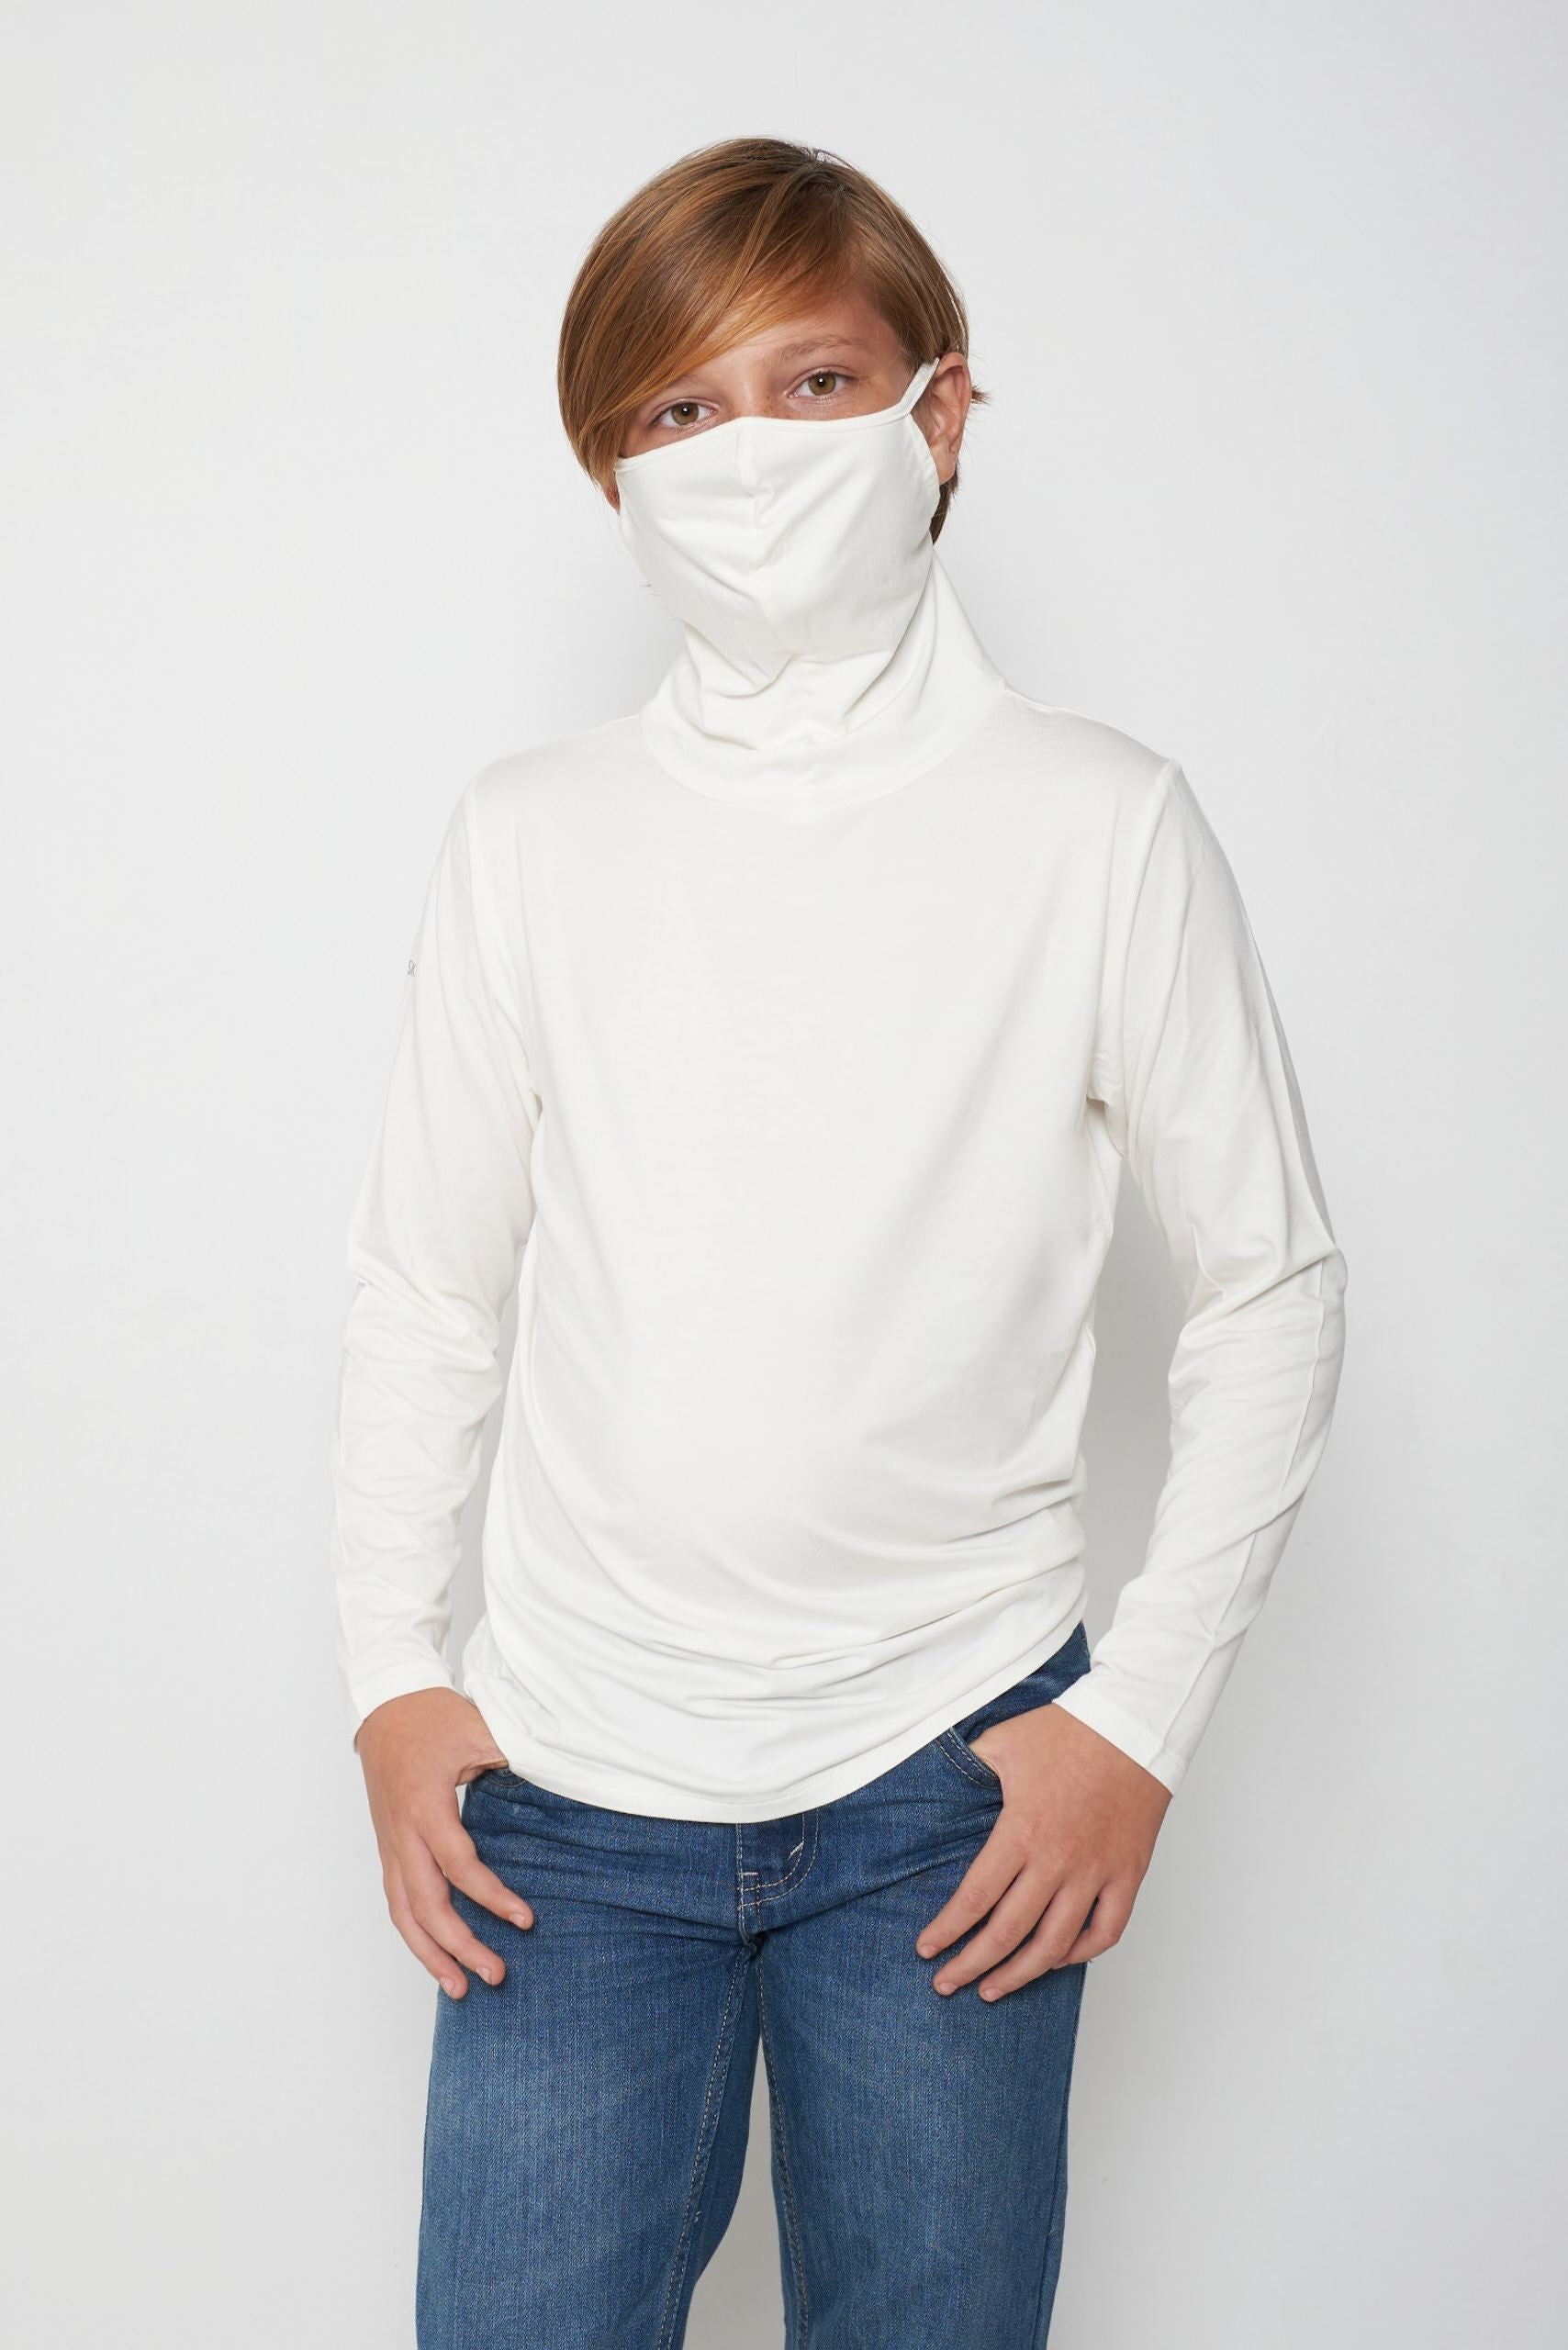 Kids Long Sleeve White Shmask™ Earloop Face Mask for Kids and Adults